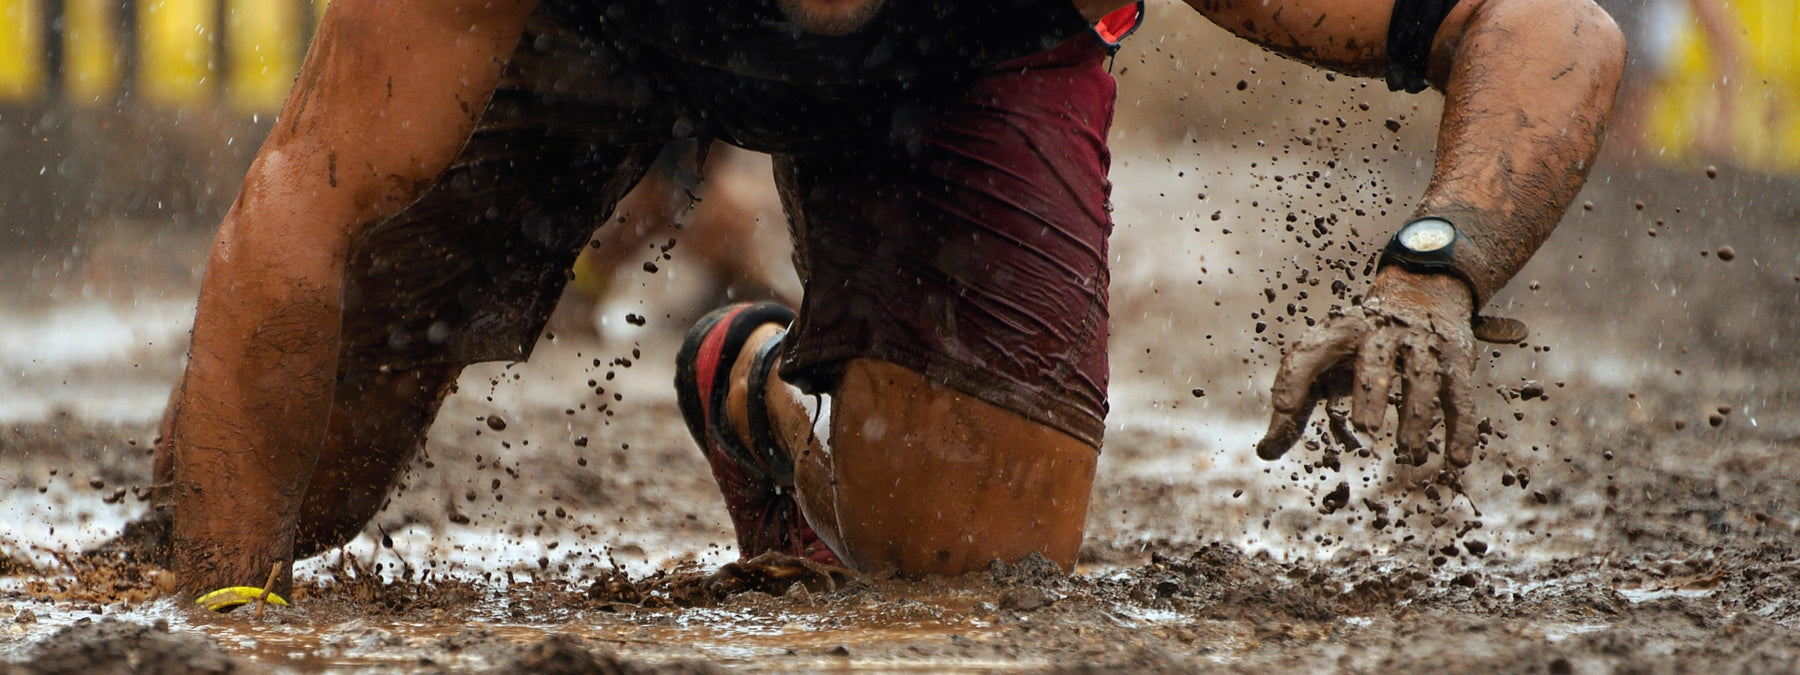 Win Your First Obstacle Race with These 7 Training Tips